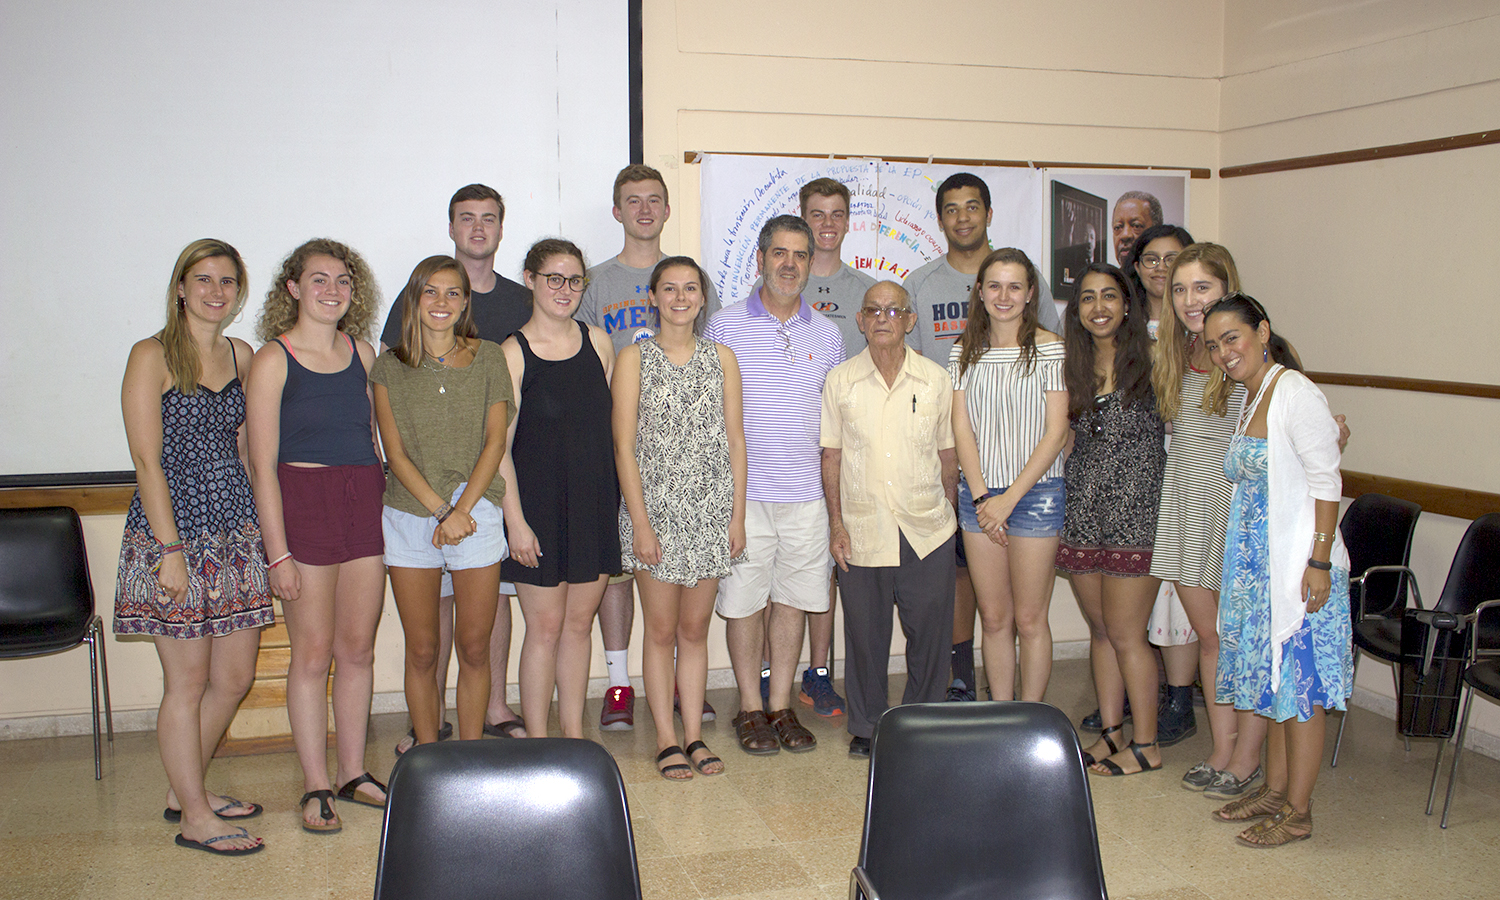 On their second day in Cuba, HWS students are greeted with Rev. Raul Suarez who founded the Center Memorial Martin Luther King Jr.